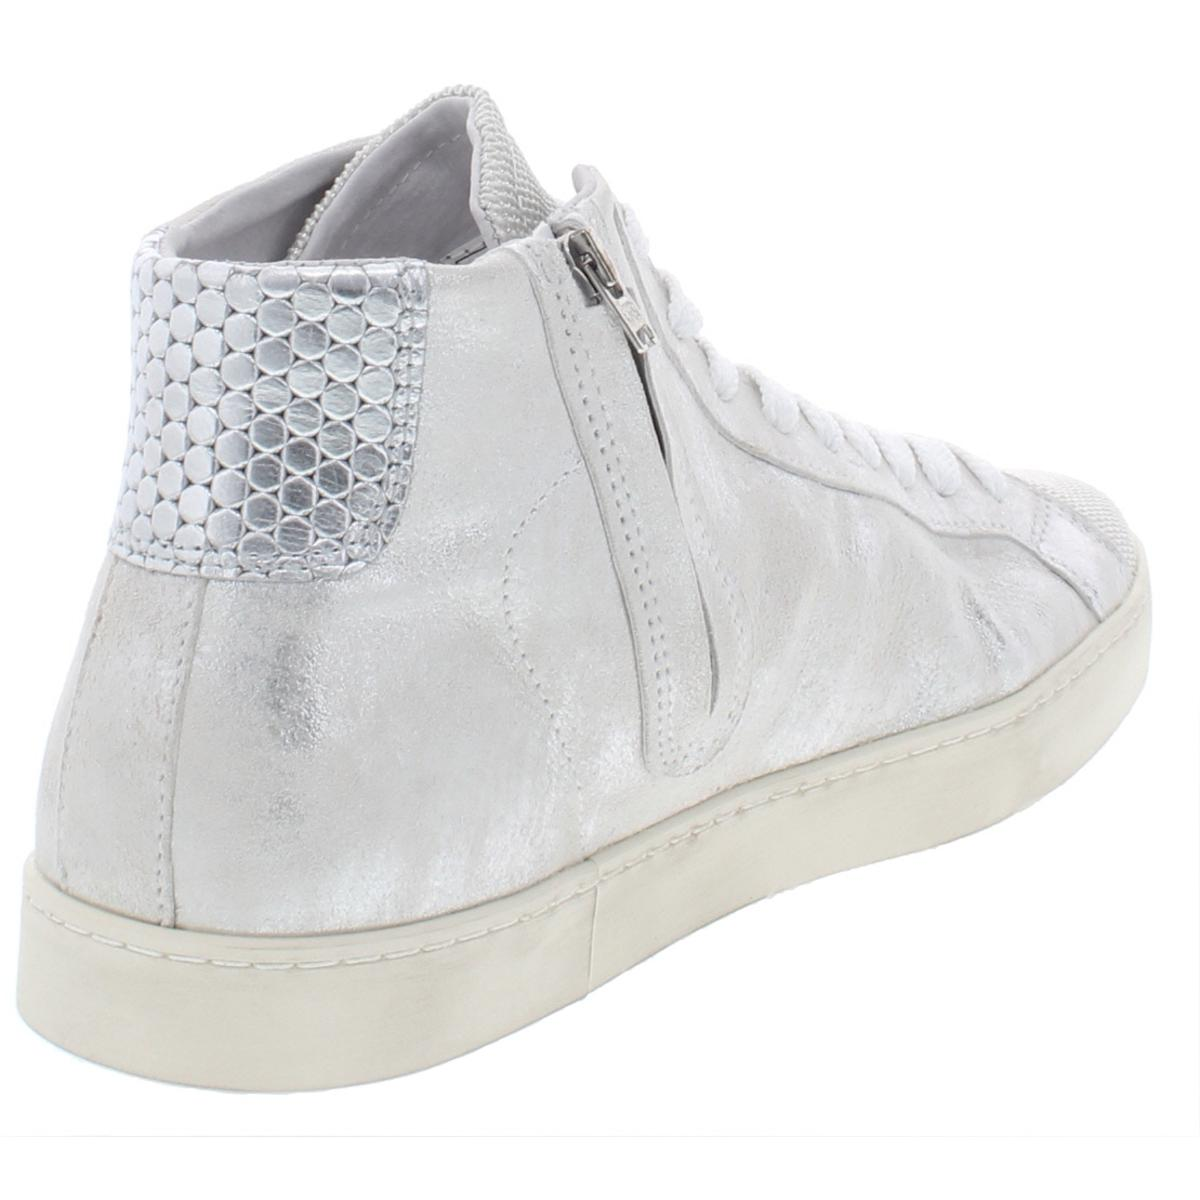 Steve-Madden-Womens-Hardwick-Leather-Fashion-High-Top-Sneakers-Shoes-BHFO-9054 thumbnail 6